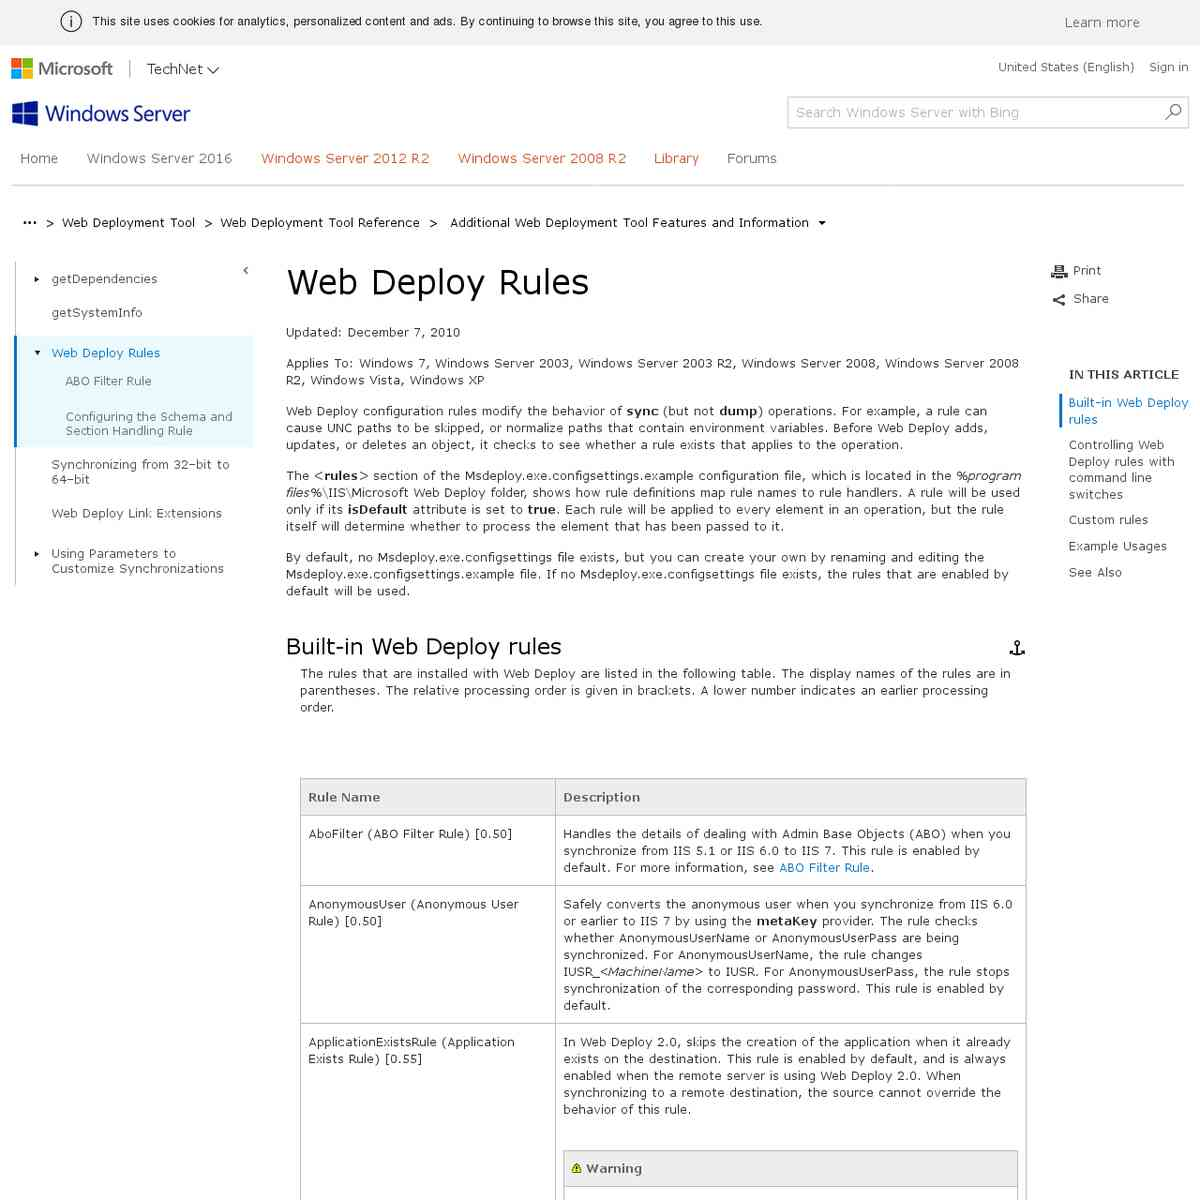 Web Deploy Rules